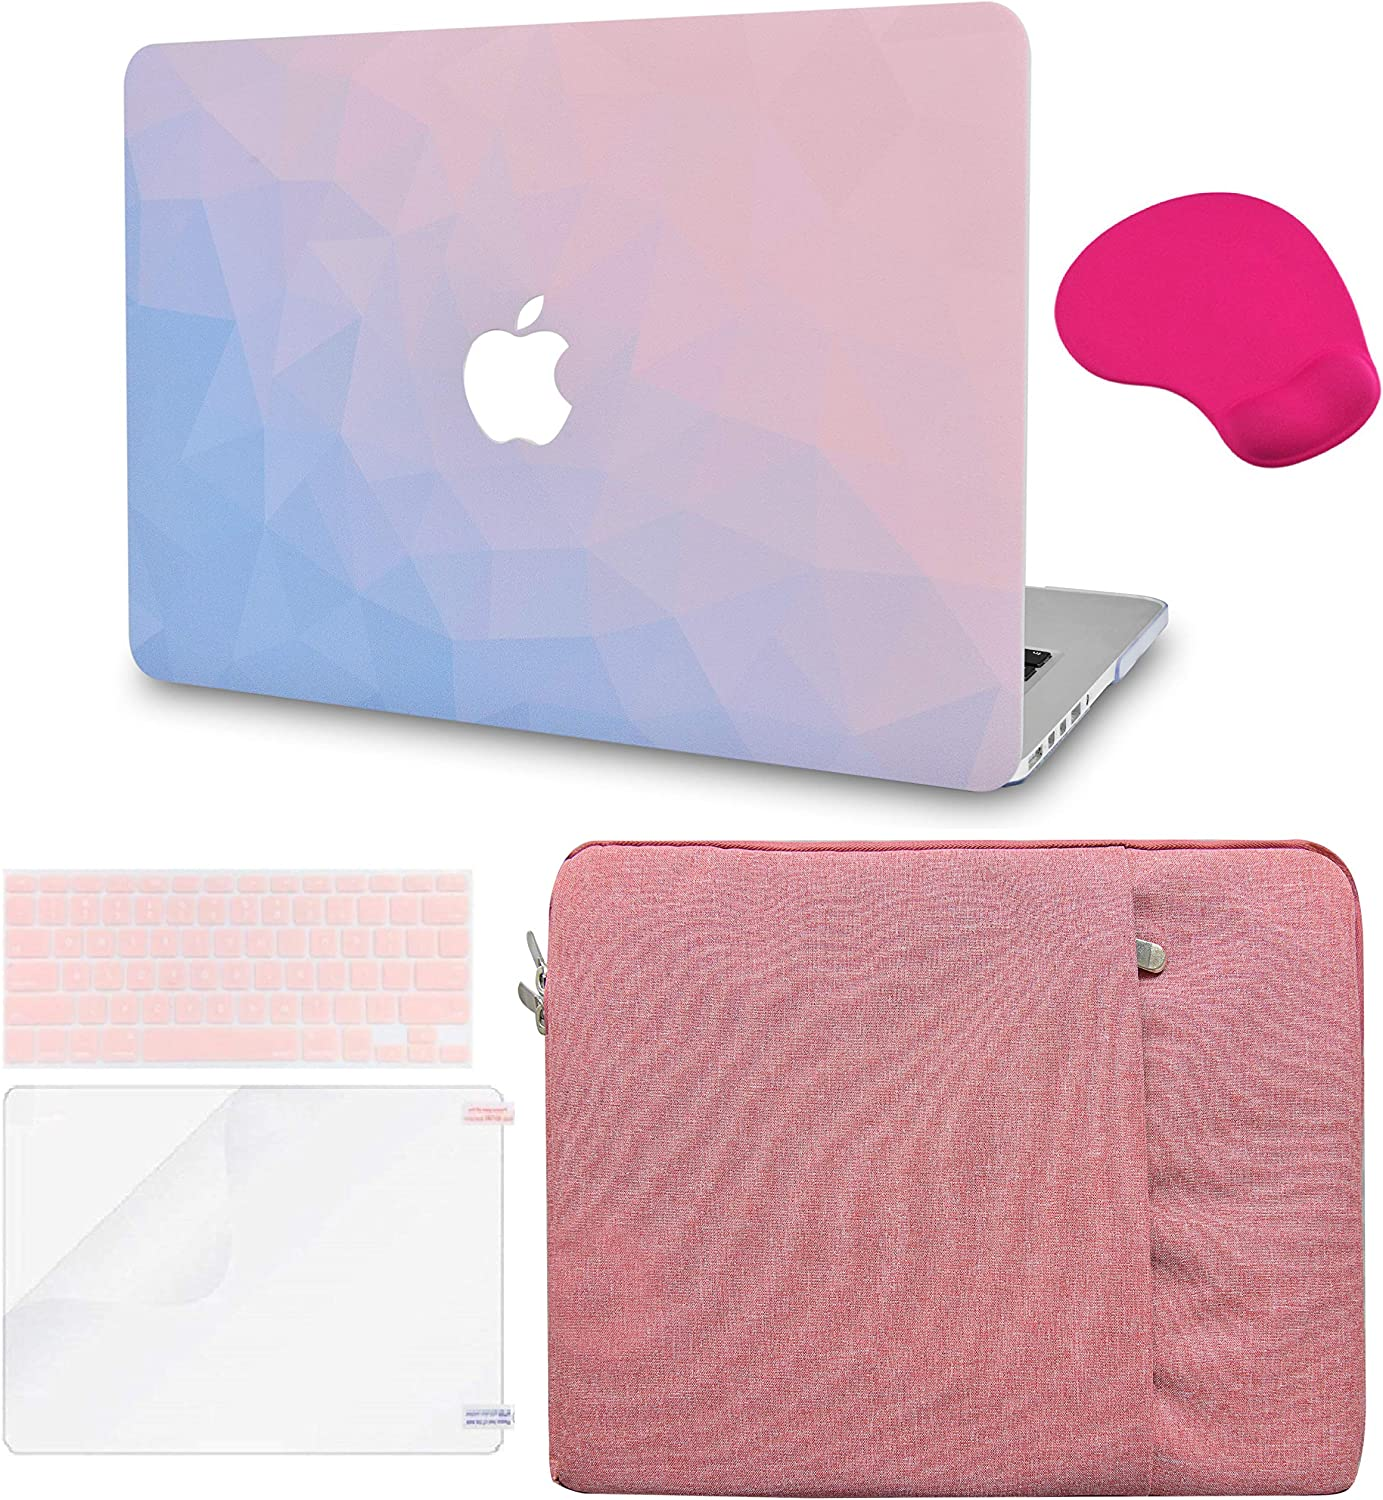 """LuvCase 5in1 LaptopCase for MacBook Pro 13""""(2020) with Touch Bar A2251/A2289HardShellCover, Sleeve, Mouse Pad, Keyboard Cover and Screen Protector(Ombre Pink Blue)"""